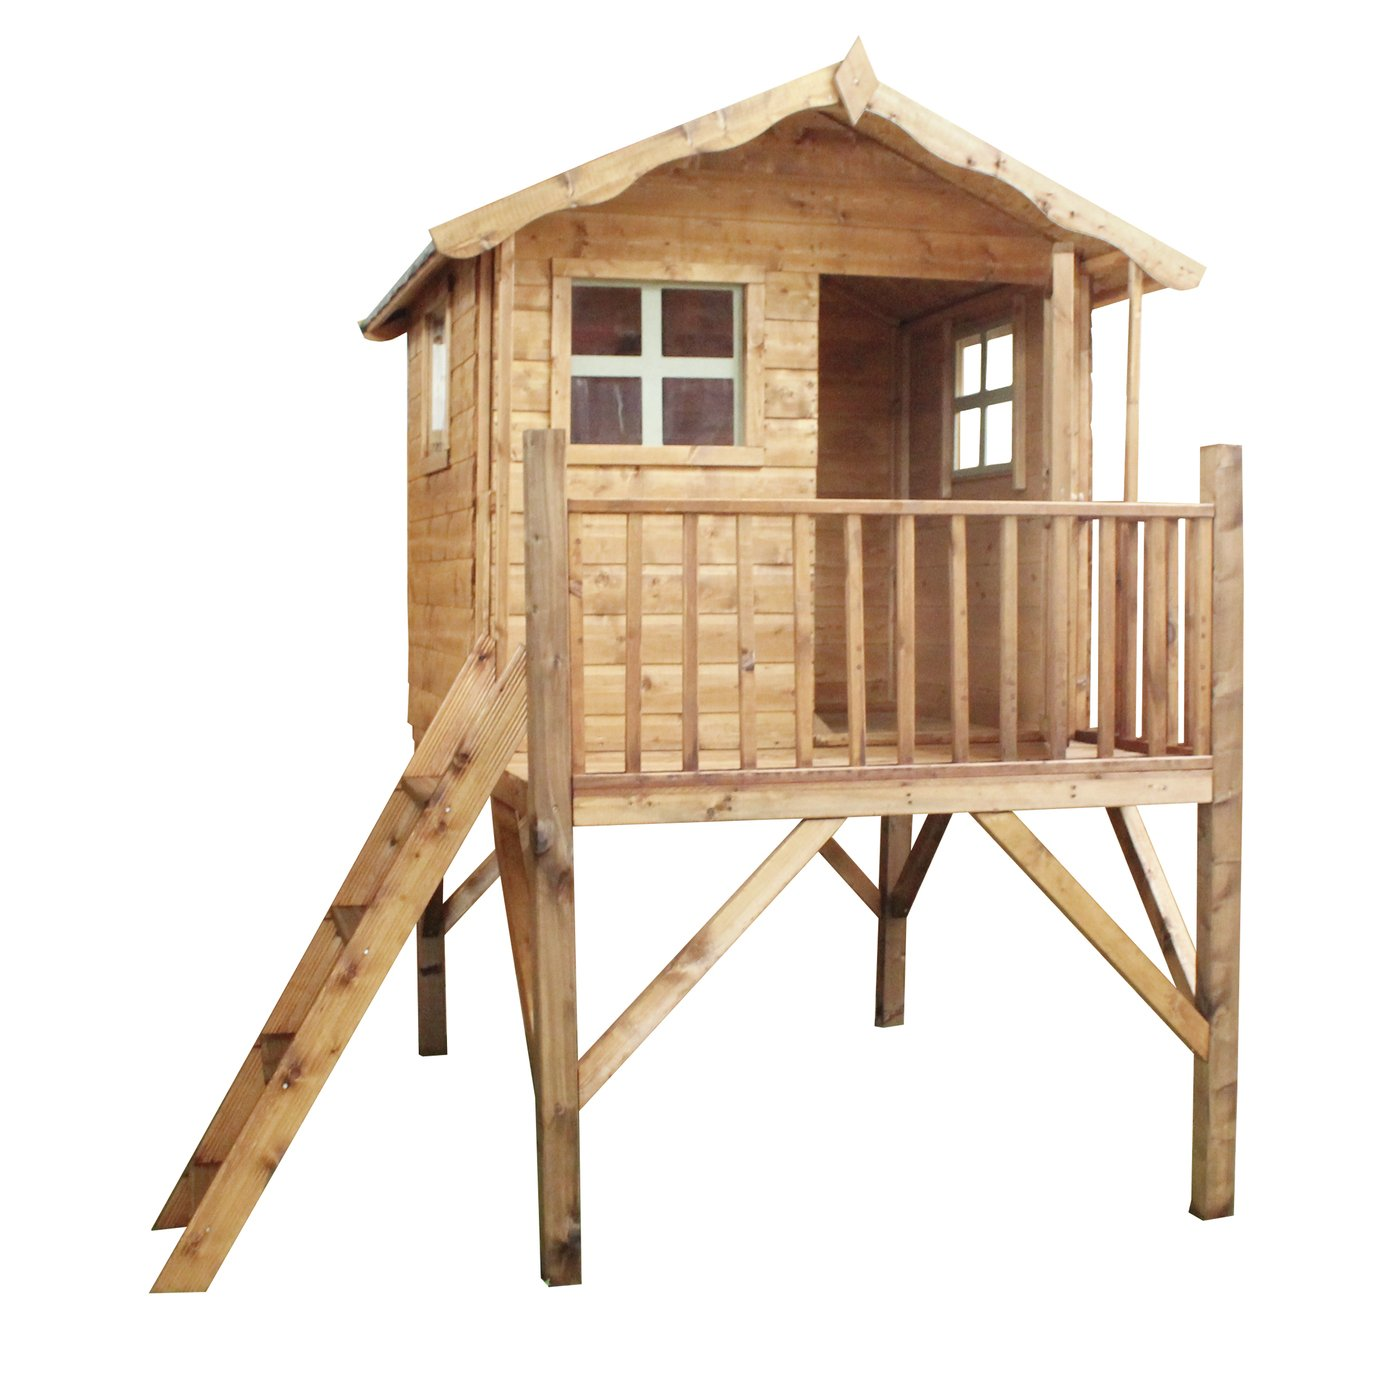 Mercia Tulip Wooden Playhouse with Tower